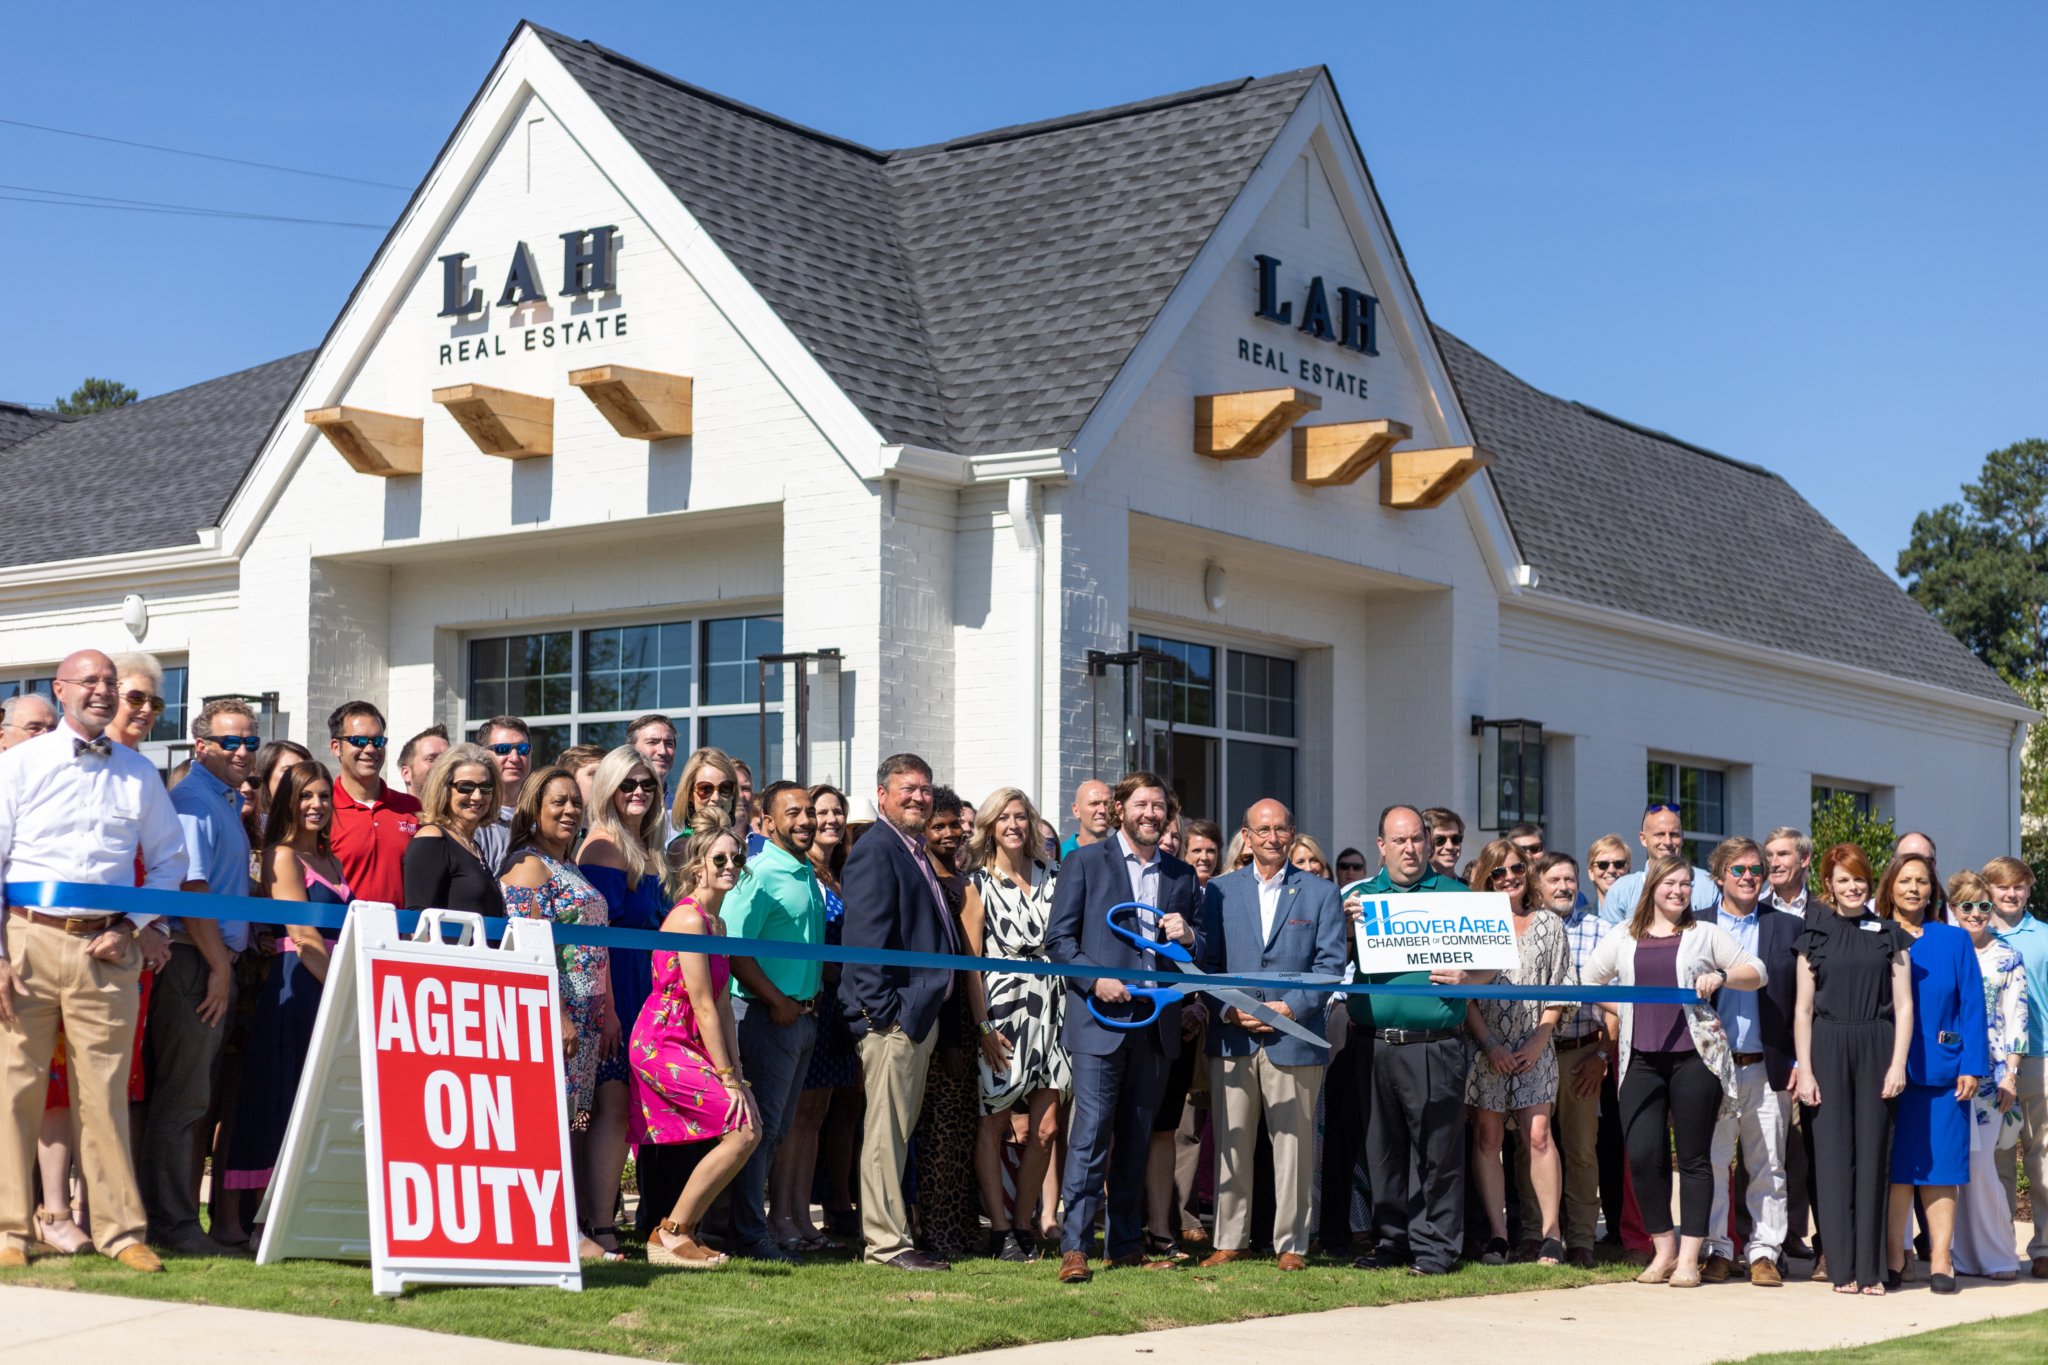 LAH Real Estate opens new office in Hoover [Photos]